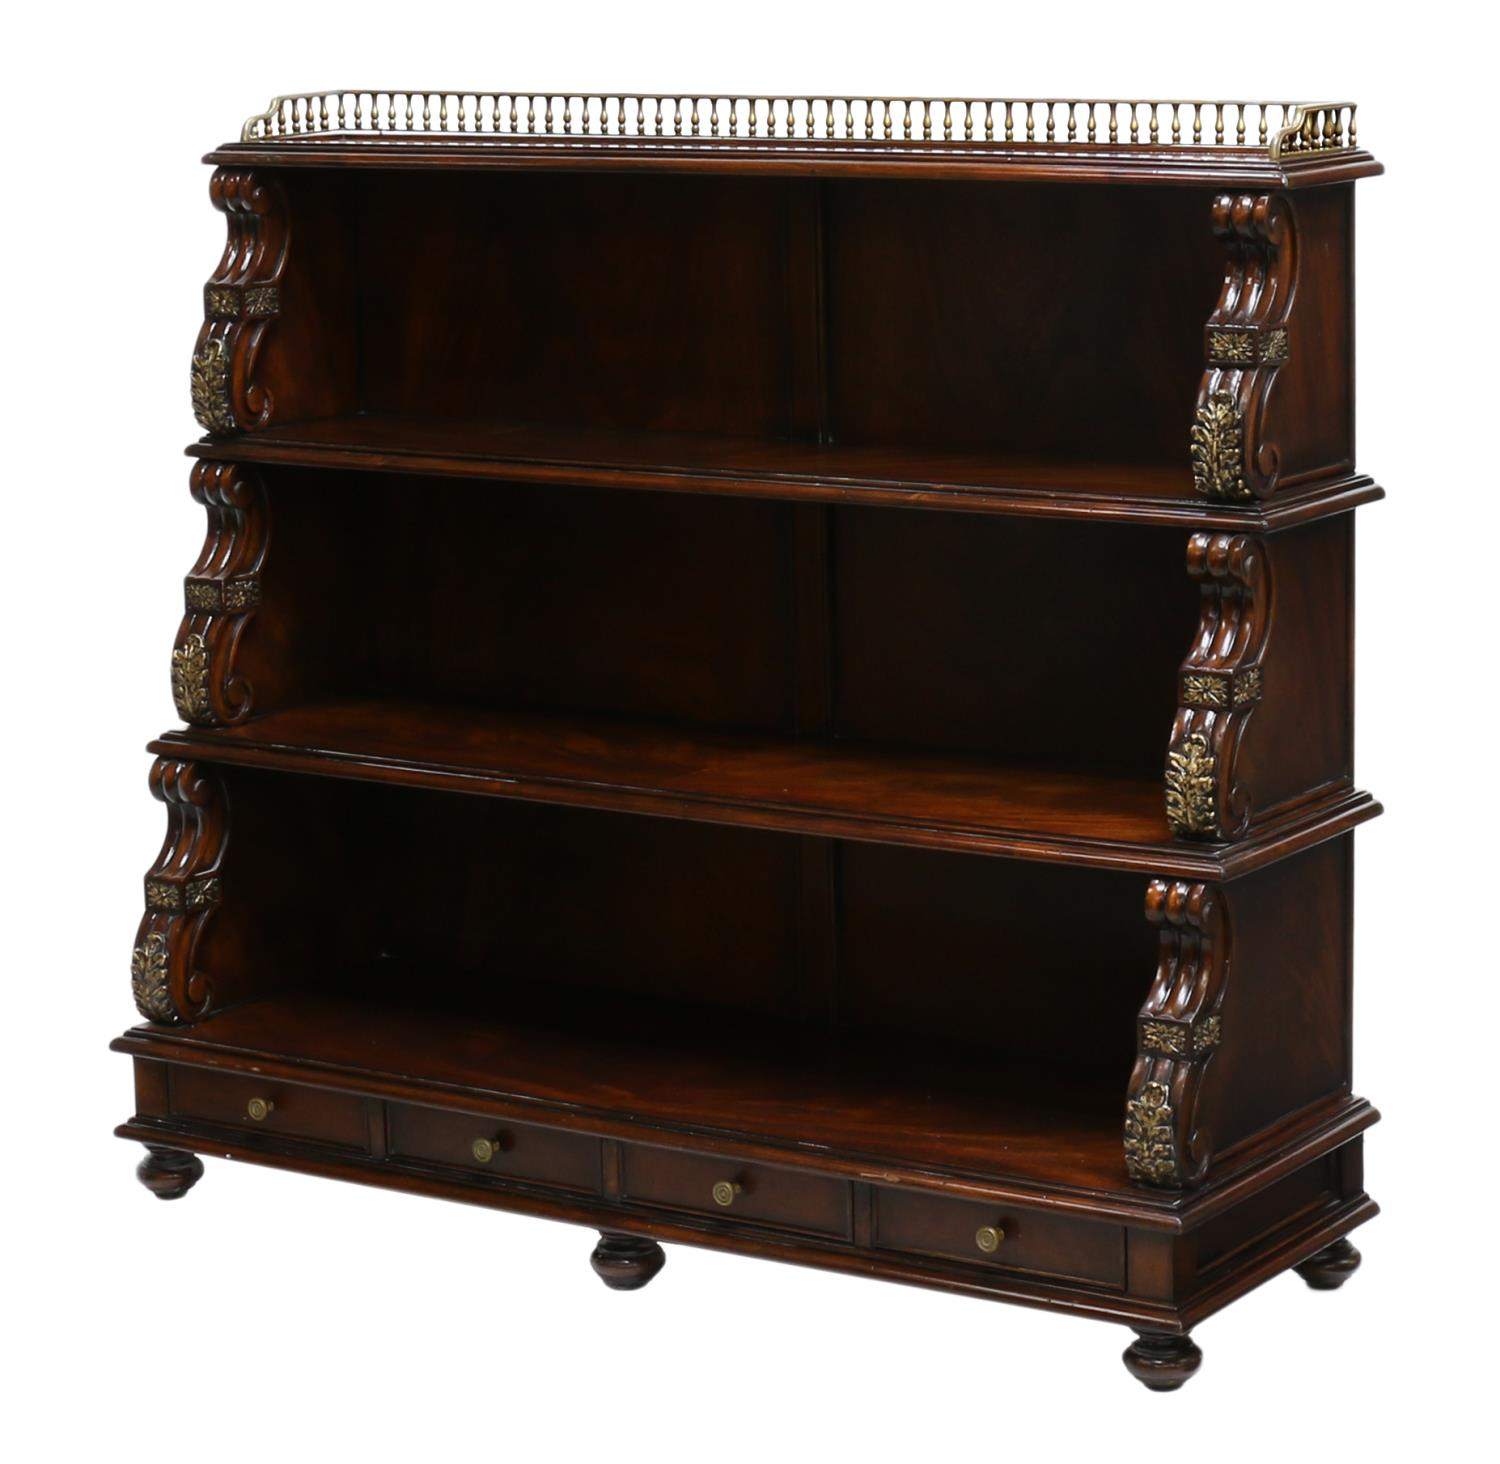 monarch fine furniture for century etagere spring two day estates auction day two austin. Black Bedroom Furniture Sets. Home Design Ideas